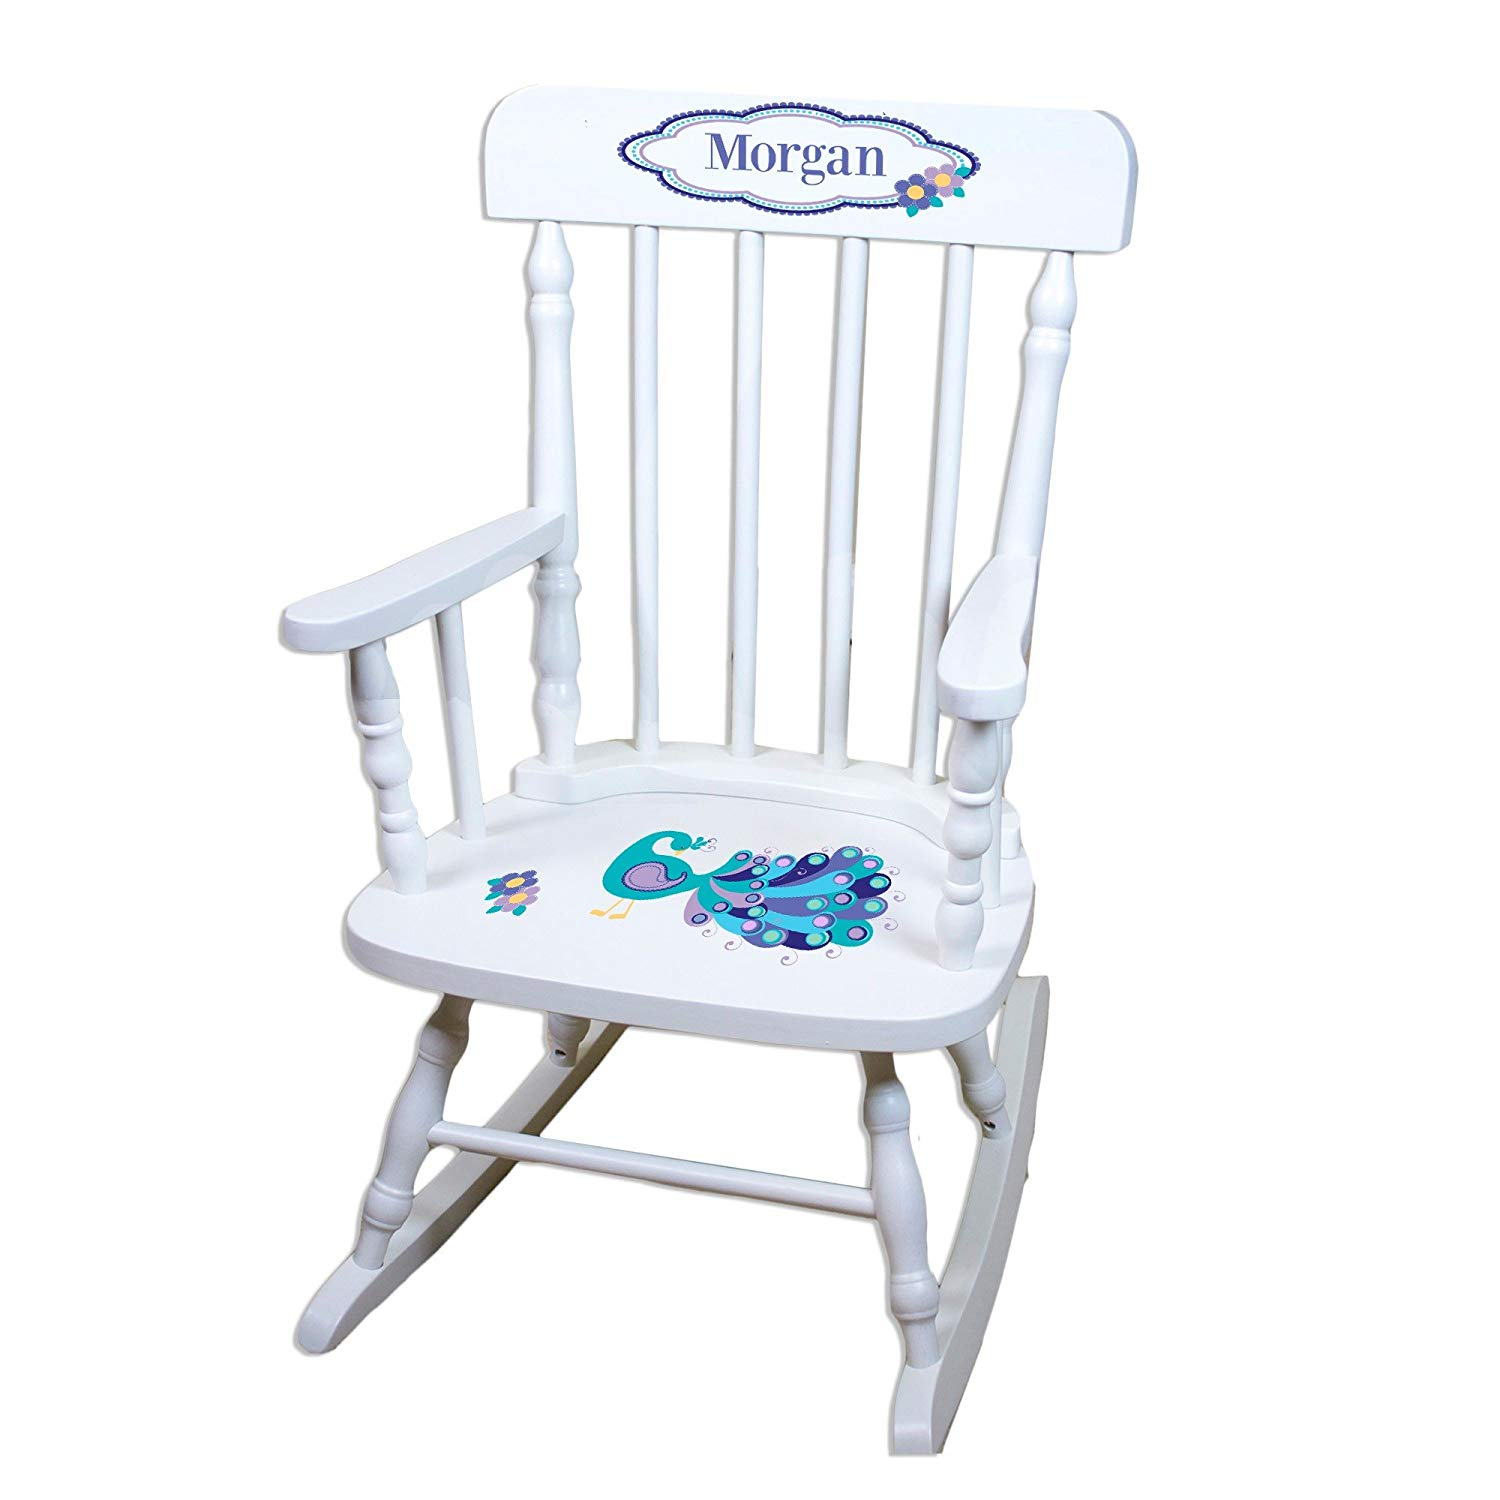 MyBambino Personalized Peacock White Wooden Childrens Rocking Chair